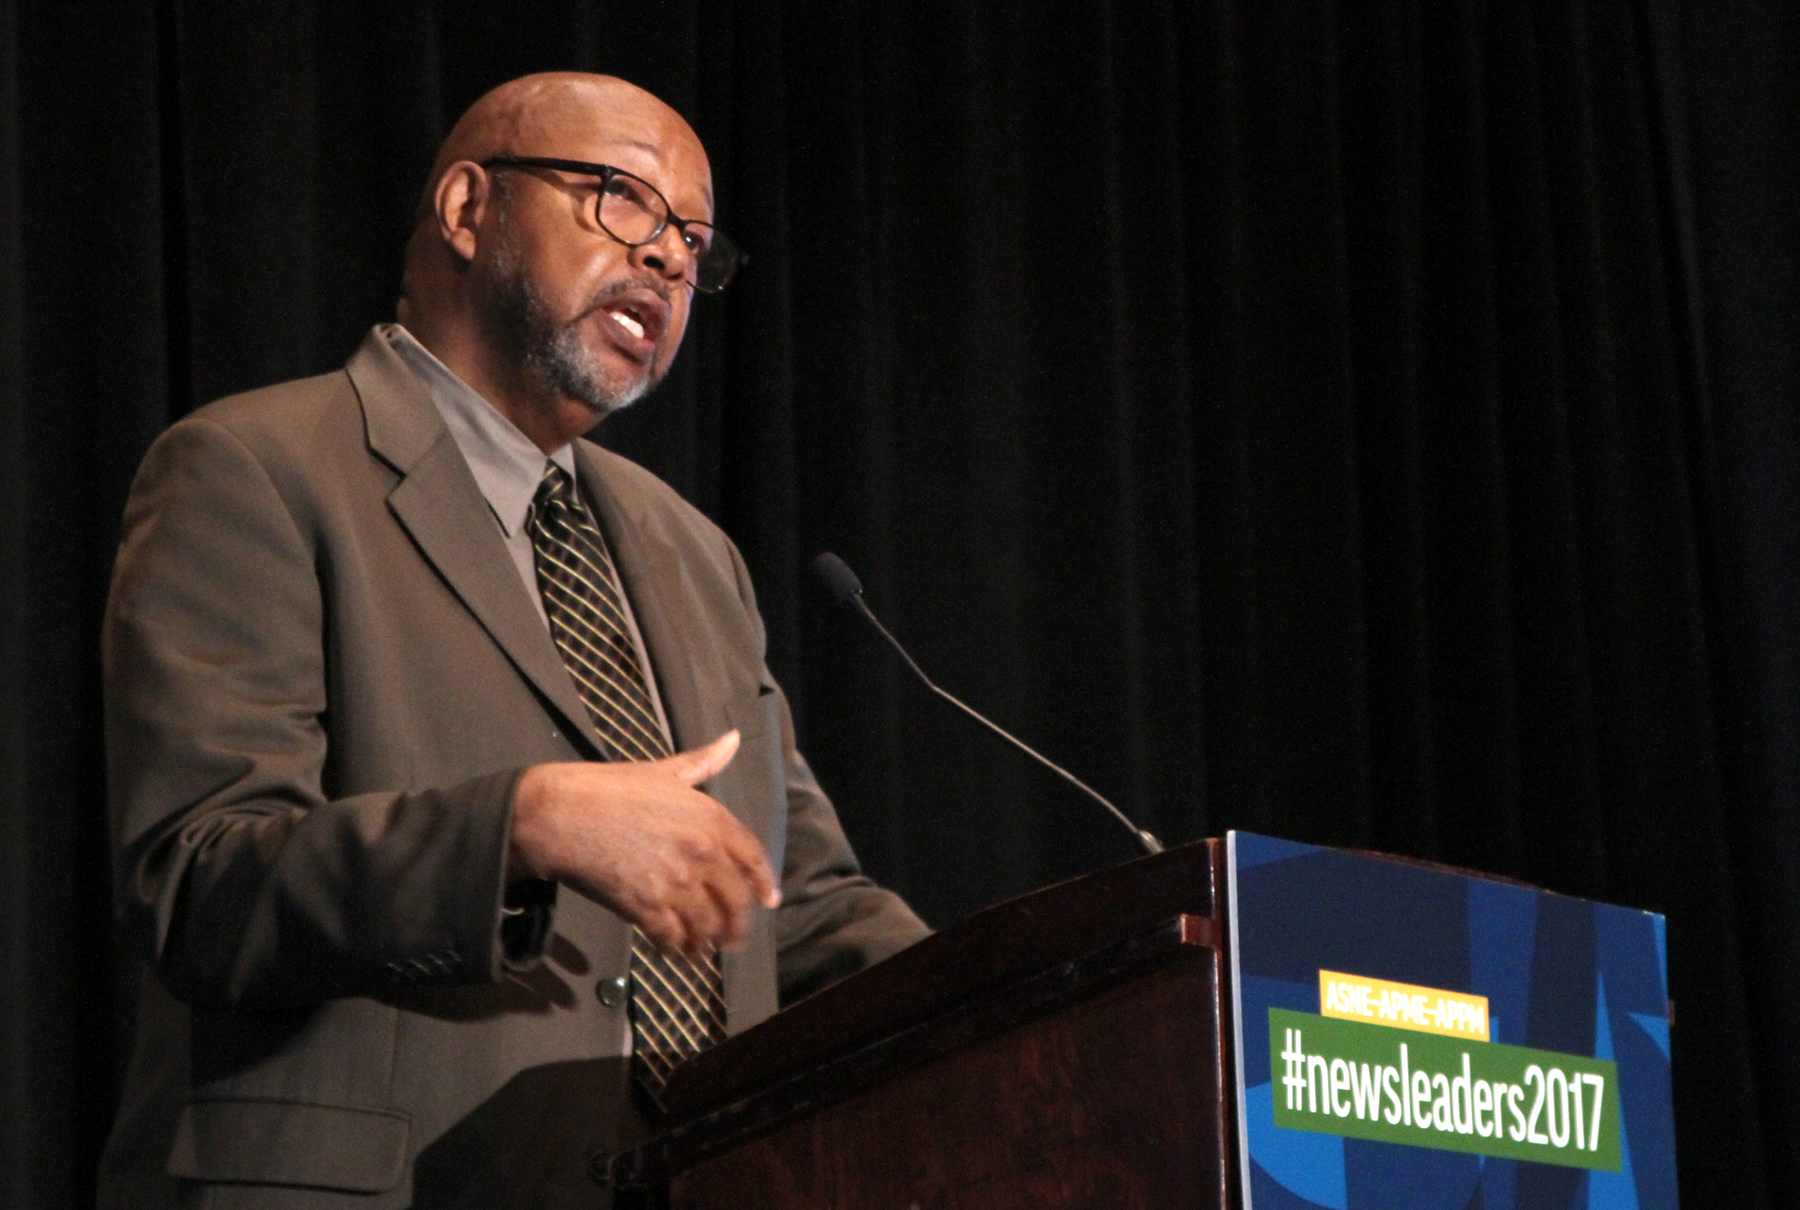 """I would much rather read a story encoded with some journalist's unconscious bias than to read one from some journalist working hard to say nothing definitive,"" Leonard Pitts Jr. told journalists on Monday. (Photos by John R. McClelland)"